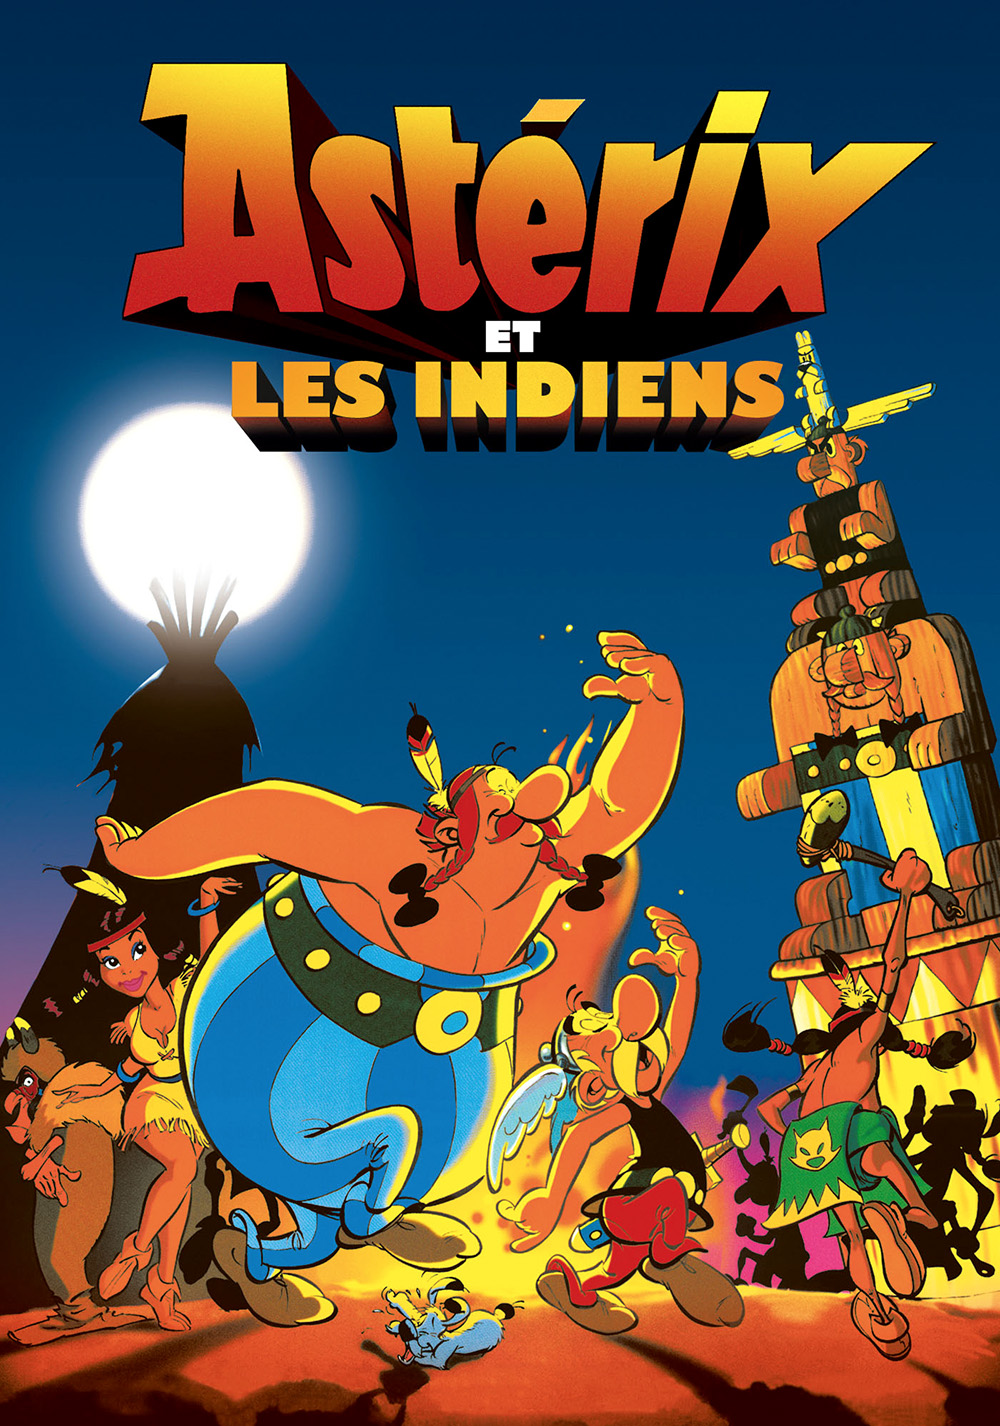 asterix and obelix cartoon movies free download